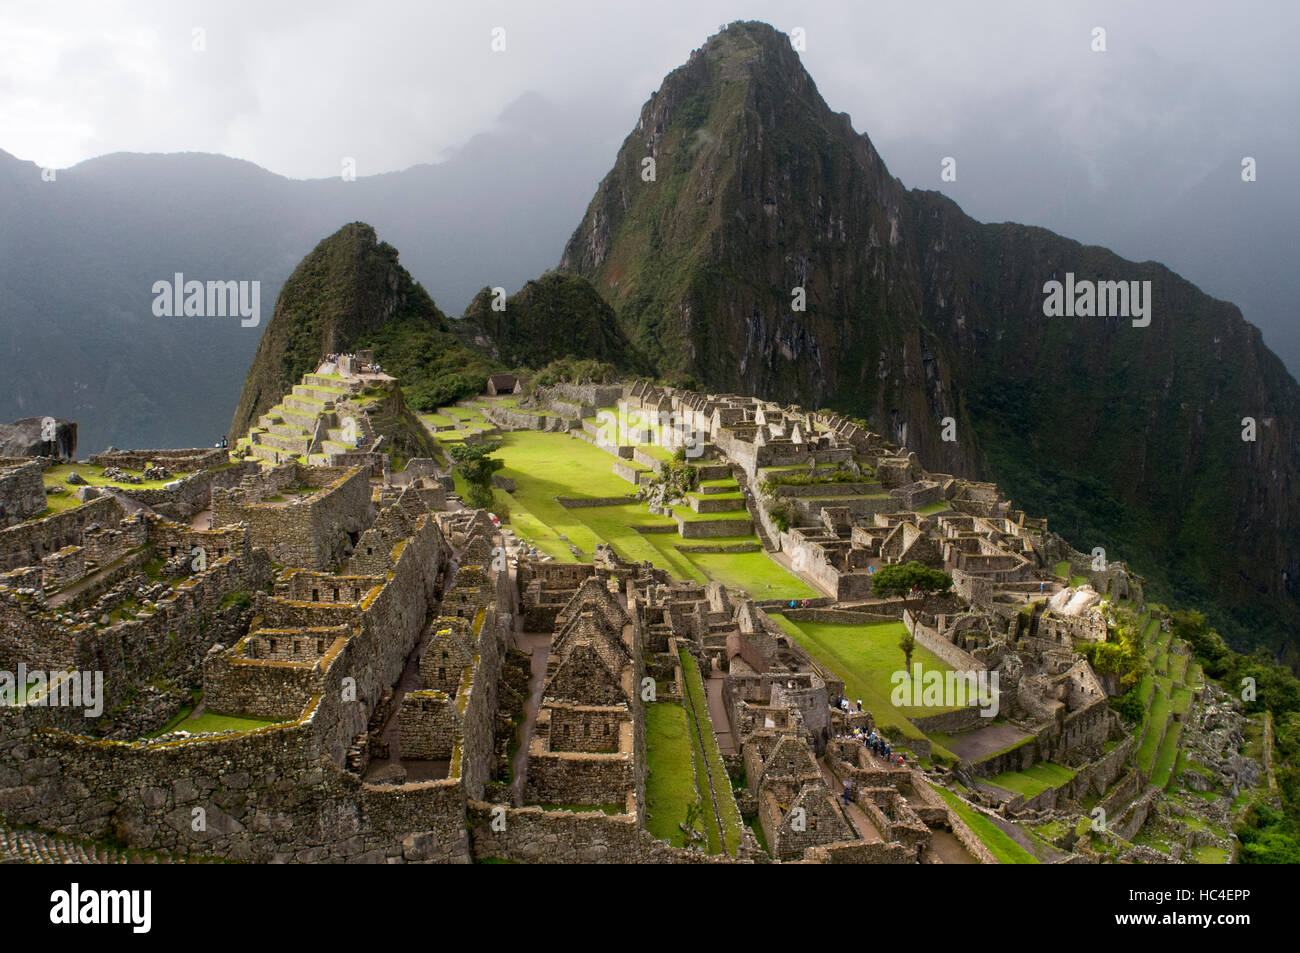 Inside the archaeological complex of Machu Picchu. Machu Picchu is a city located high in the Andes Mountains in - Stock Image